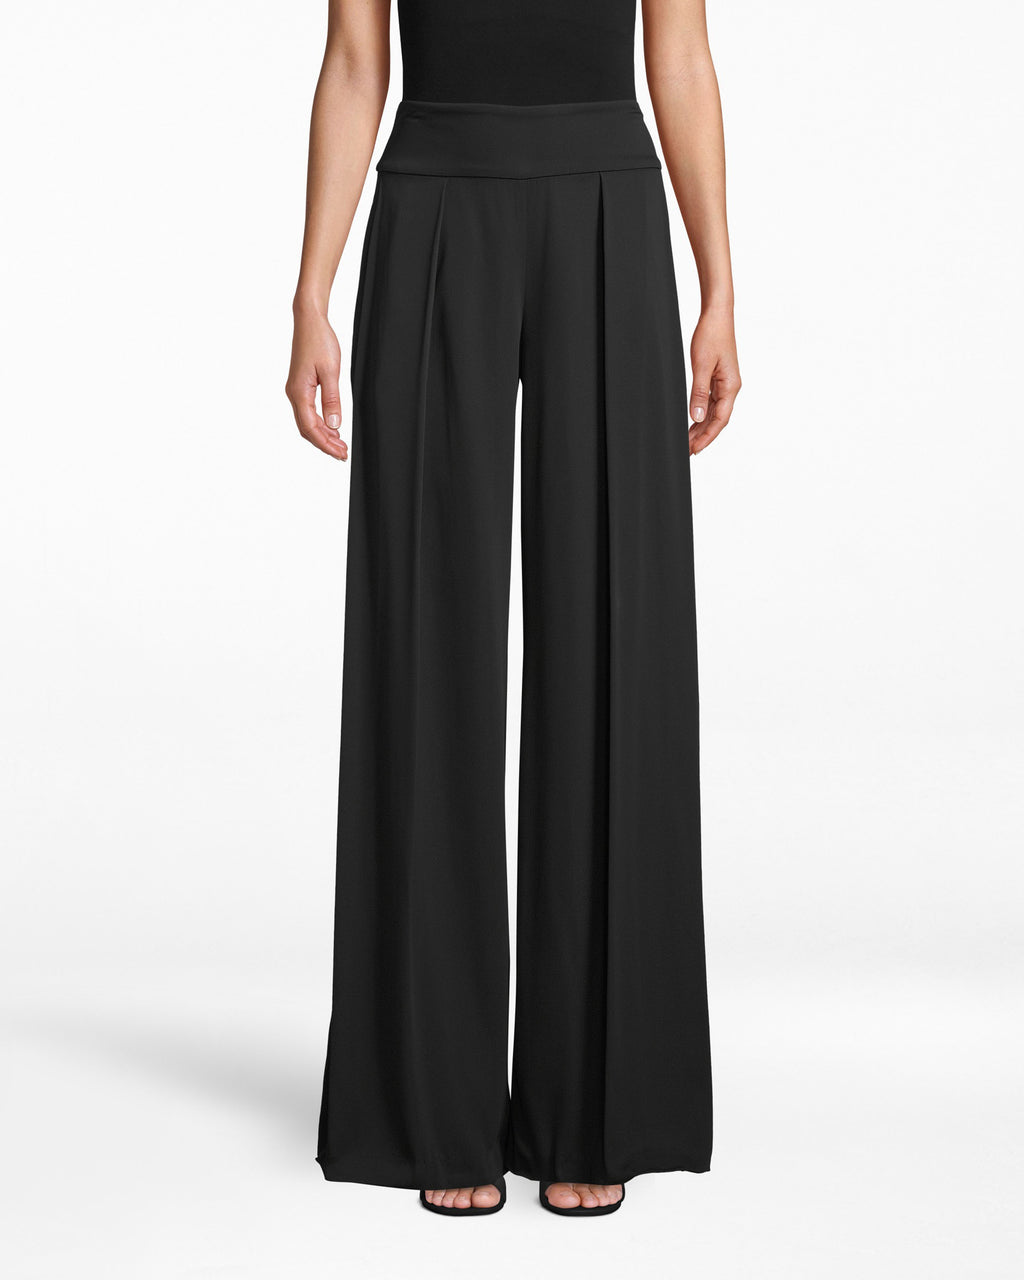 "BH10065 - NEW STRETCH CREPE ""SKYSCRAPER"" PLEAT PANTS - bottoms - pants - Like a skyscraper. Take these lengthening pants to the office and after-party - they feature minimal pleating and hit below the ankle."